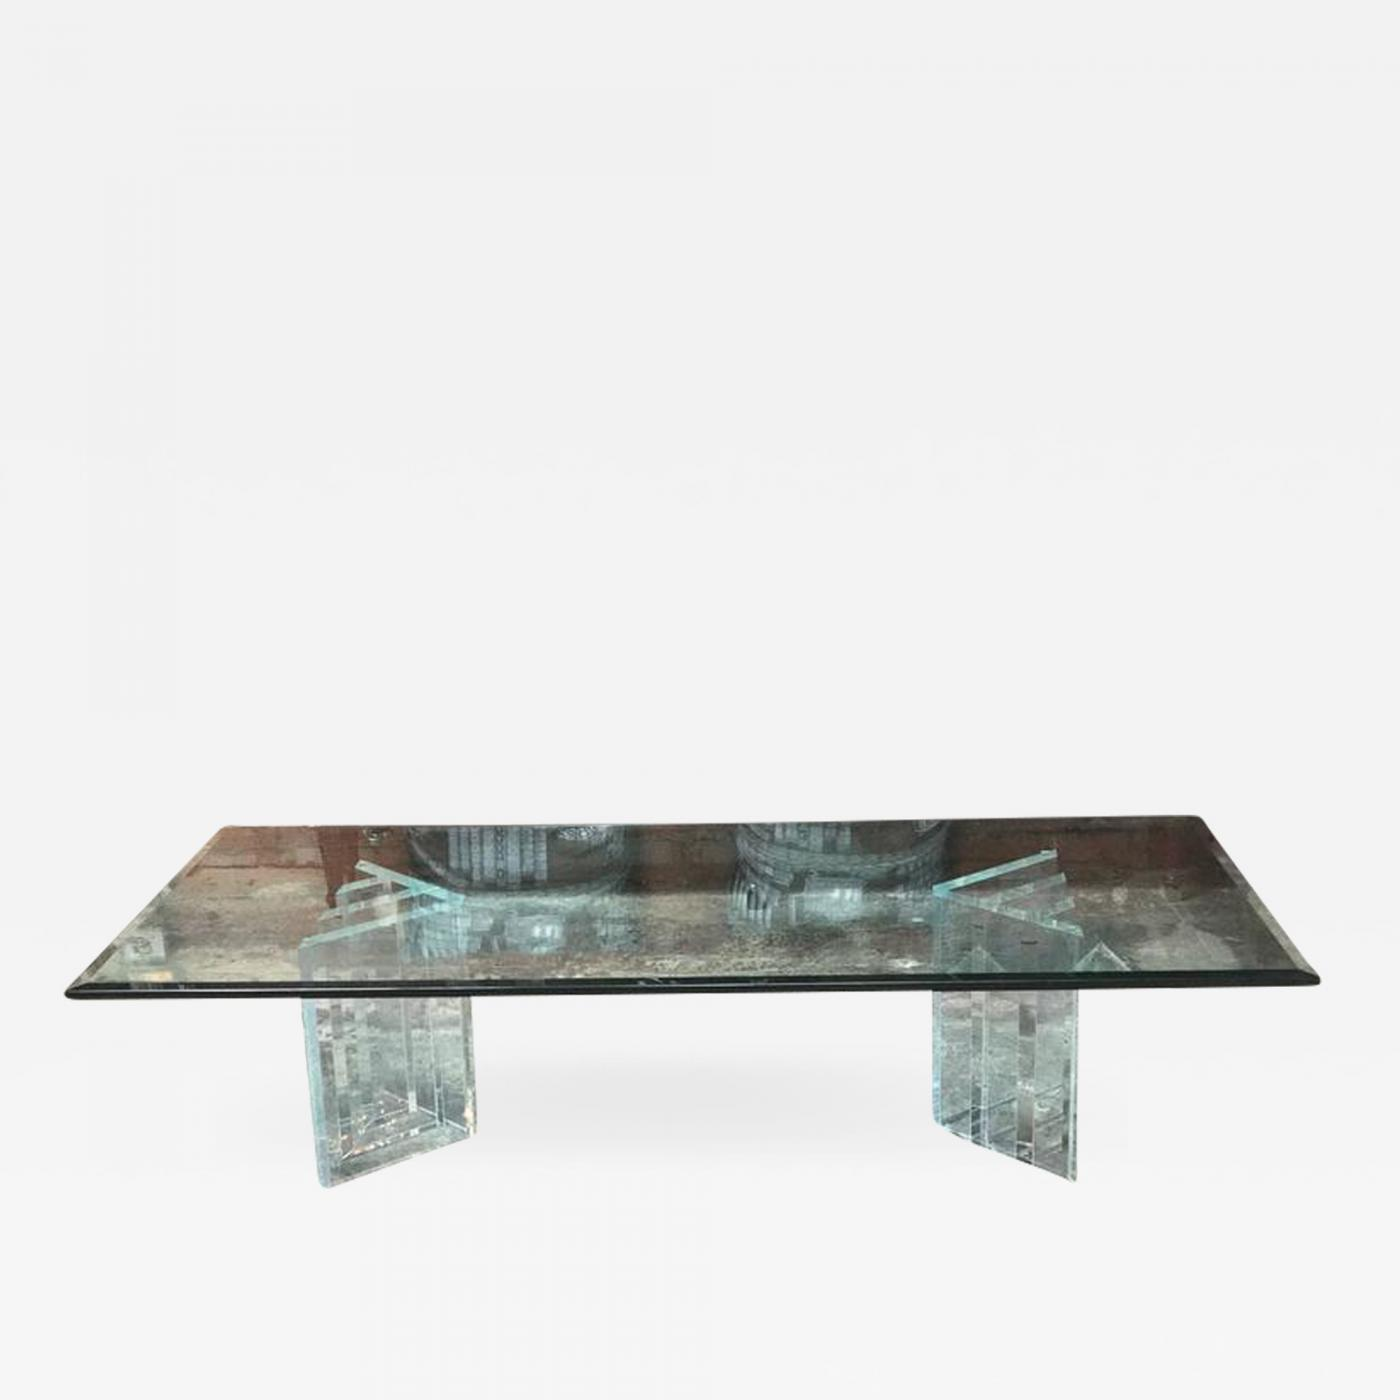 Magnificent Beautiful Lucite Italian Coffee Table Base With Thick Glass Top Interior Design Ideas Clesiryabchikinfo